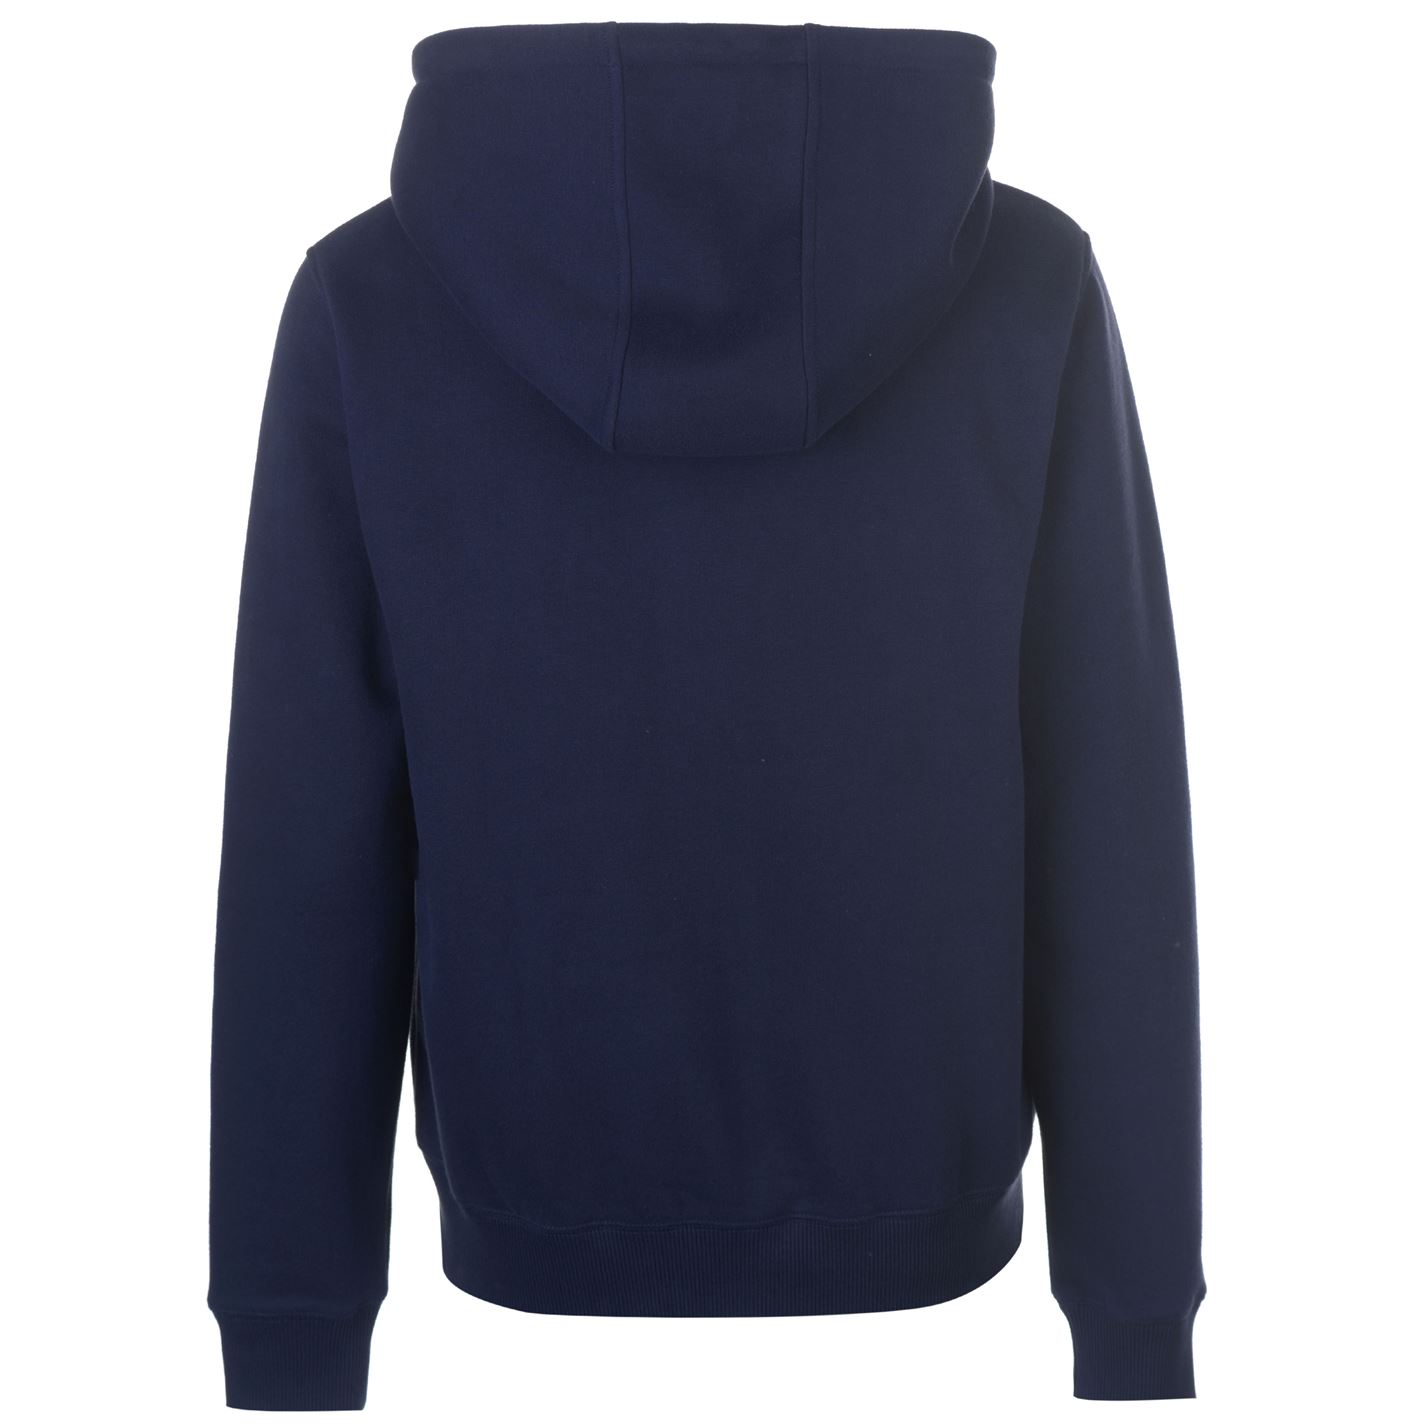 Shop Your Puma Reebok Sweatshirts & Fleece Combin Value And